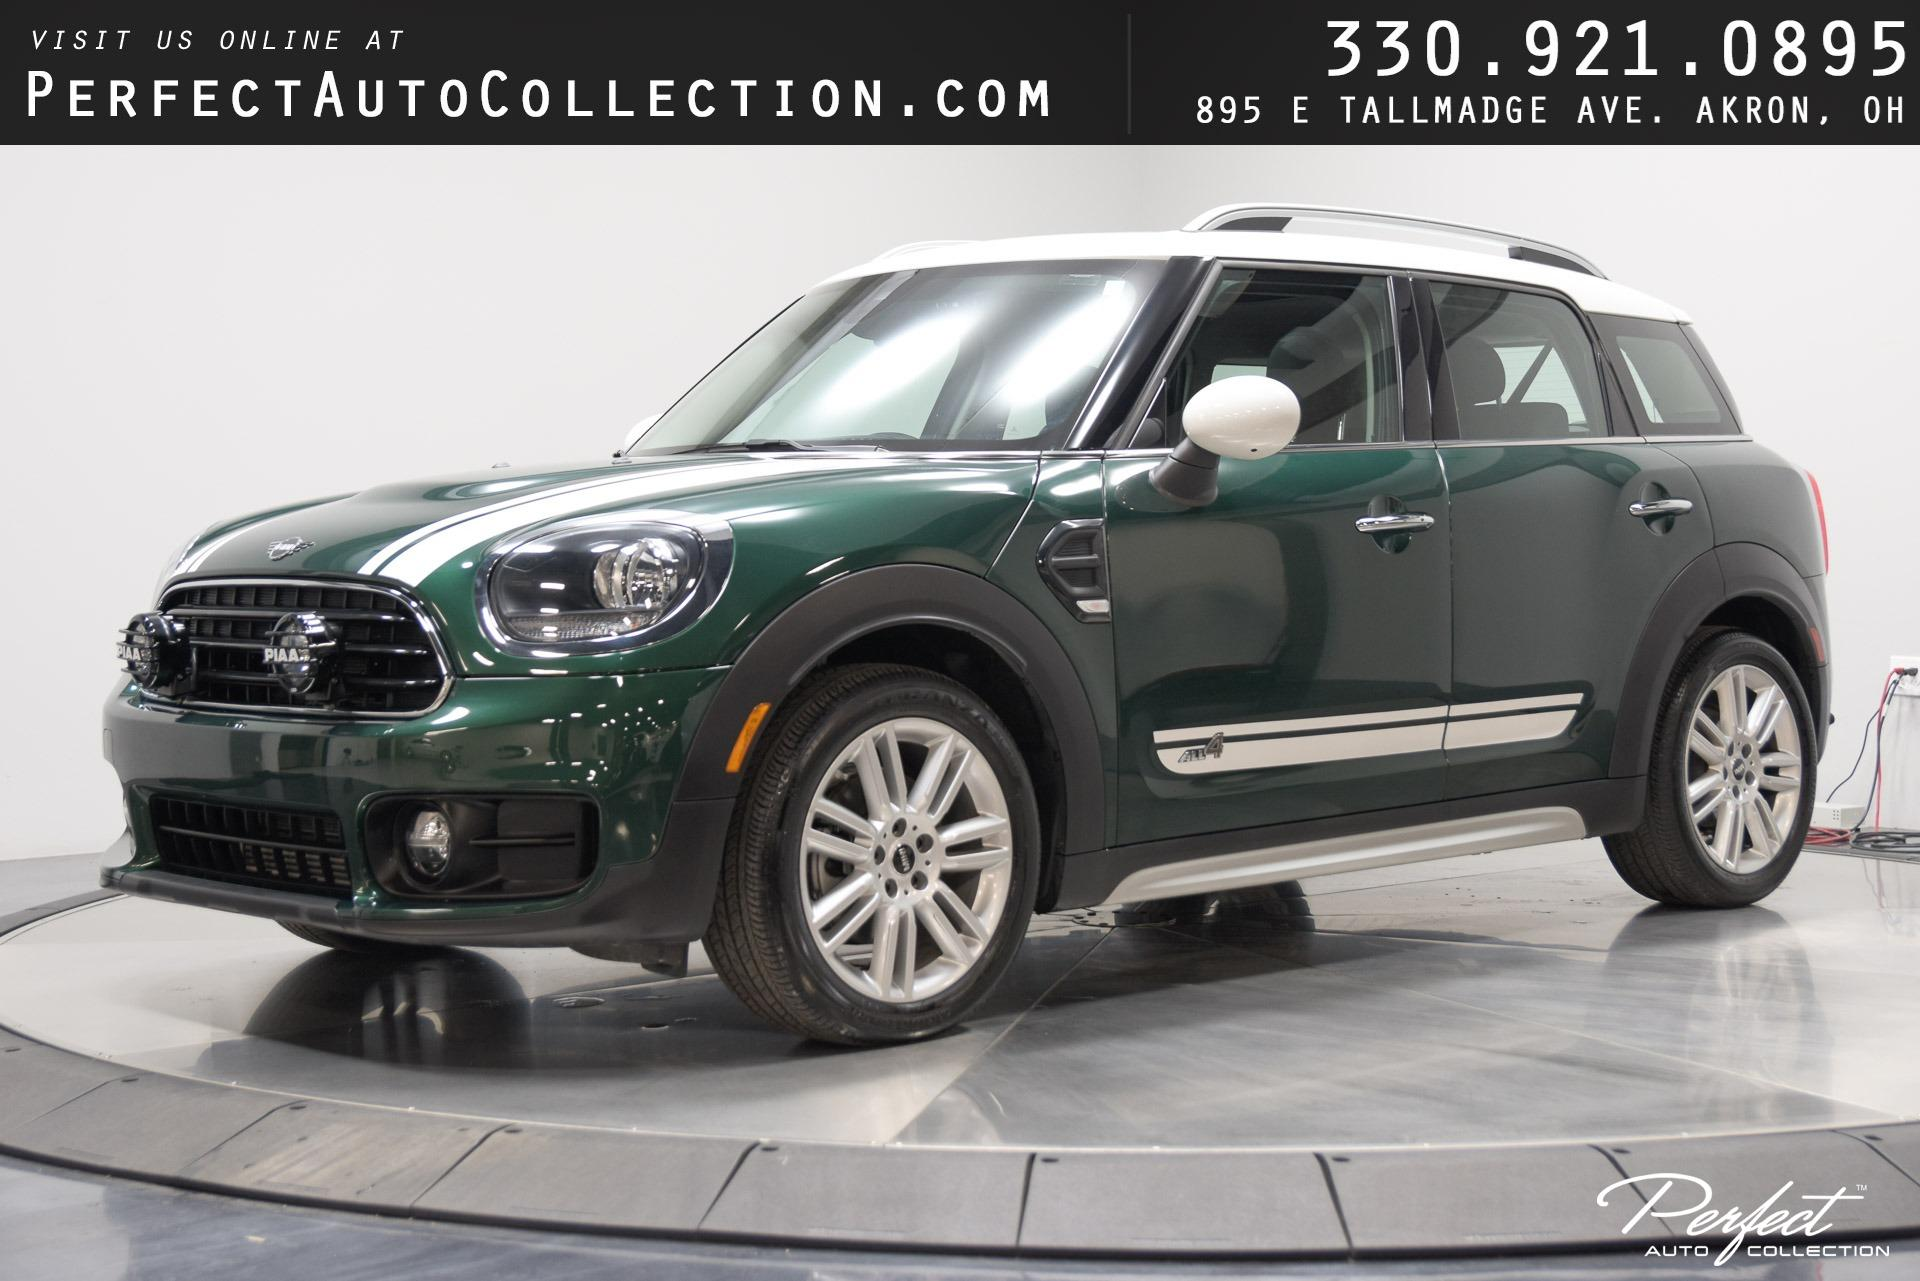 Used 2019 MINI Countryman Cooper ALL4 for sale $23,995 at Perfect Auto Collection in Akron OH 44310 1